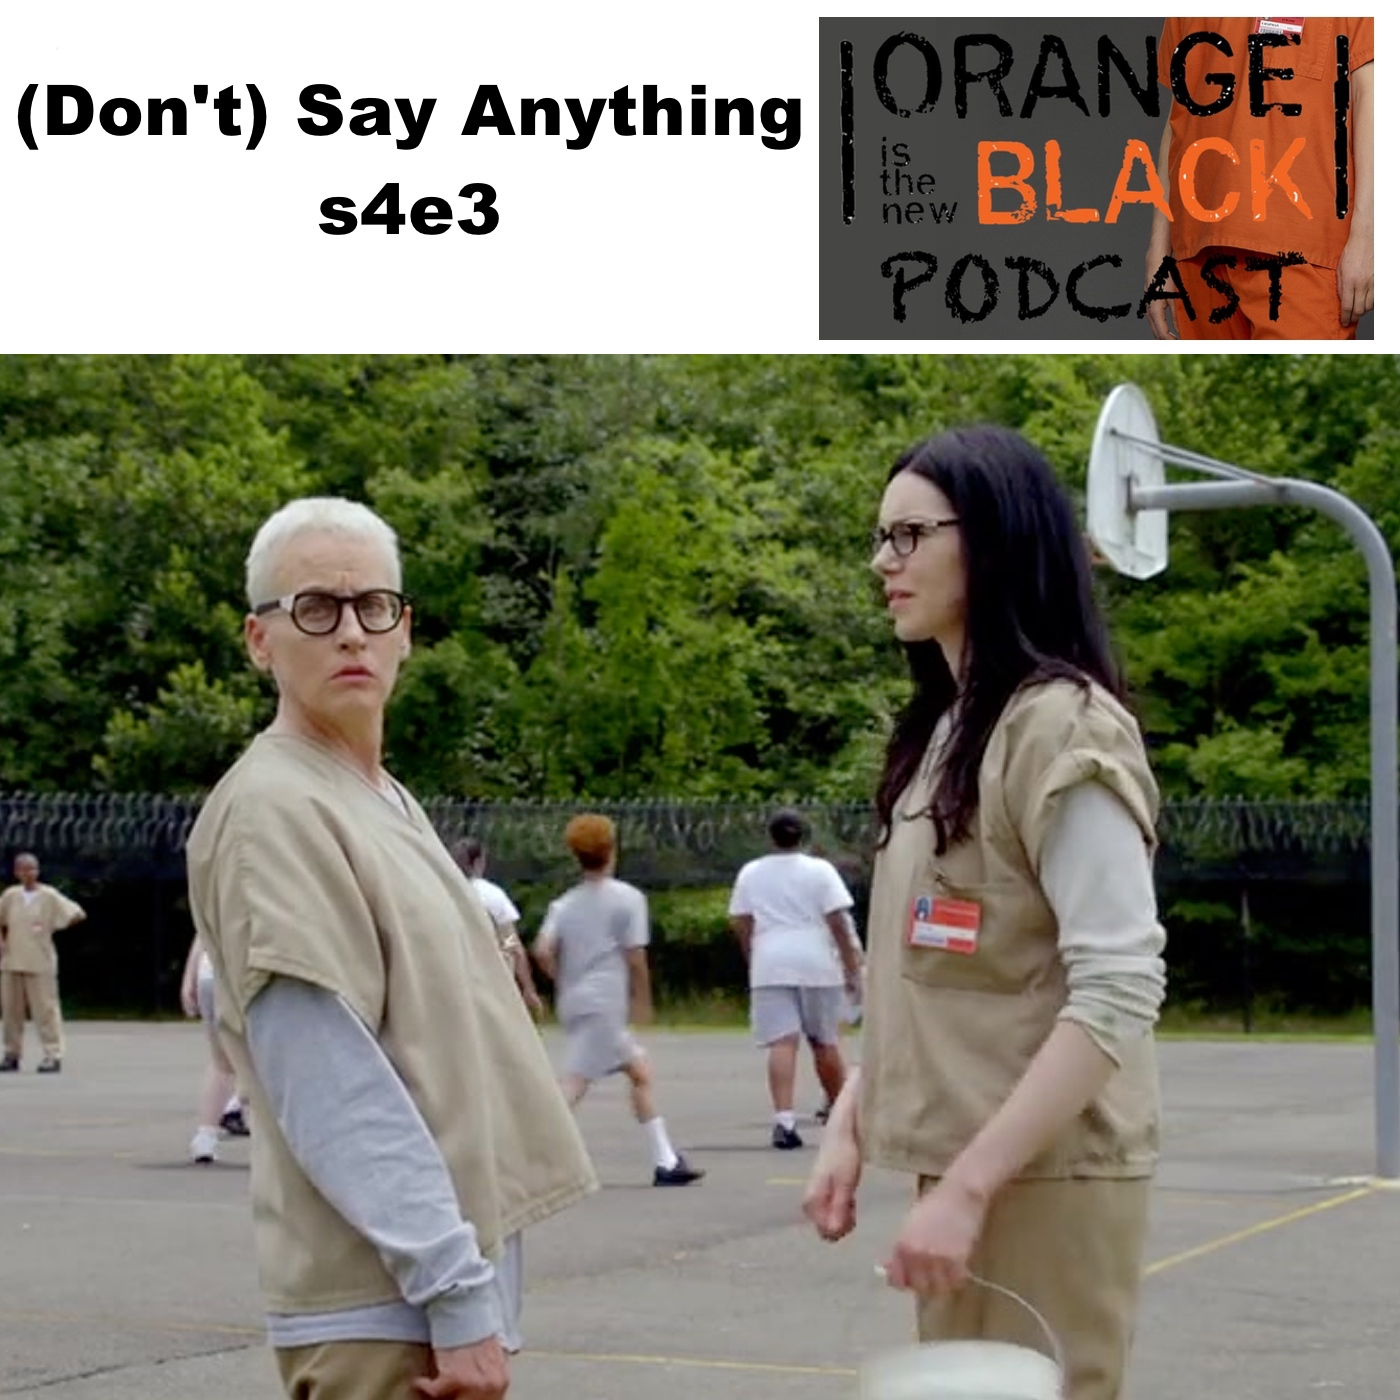 s4e3 (Don't) Say Anything - Orange is the New Black Podcast